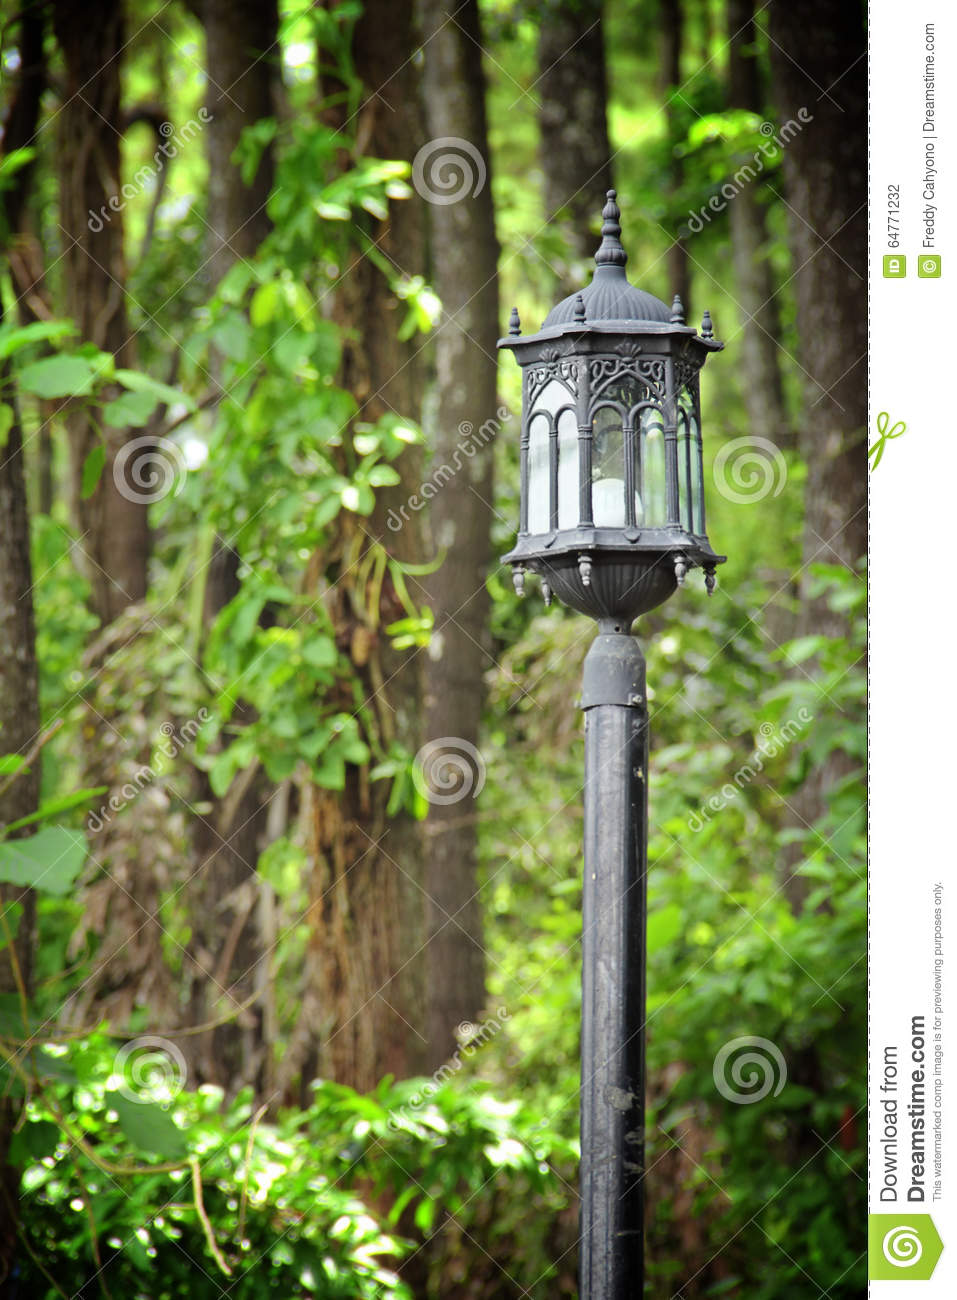 Home Traditional Foliage Lamppost